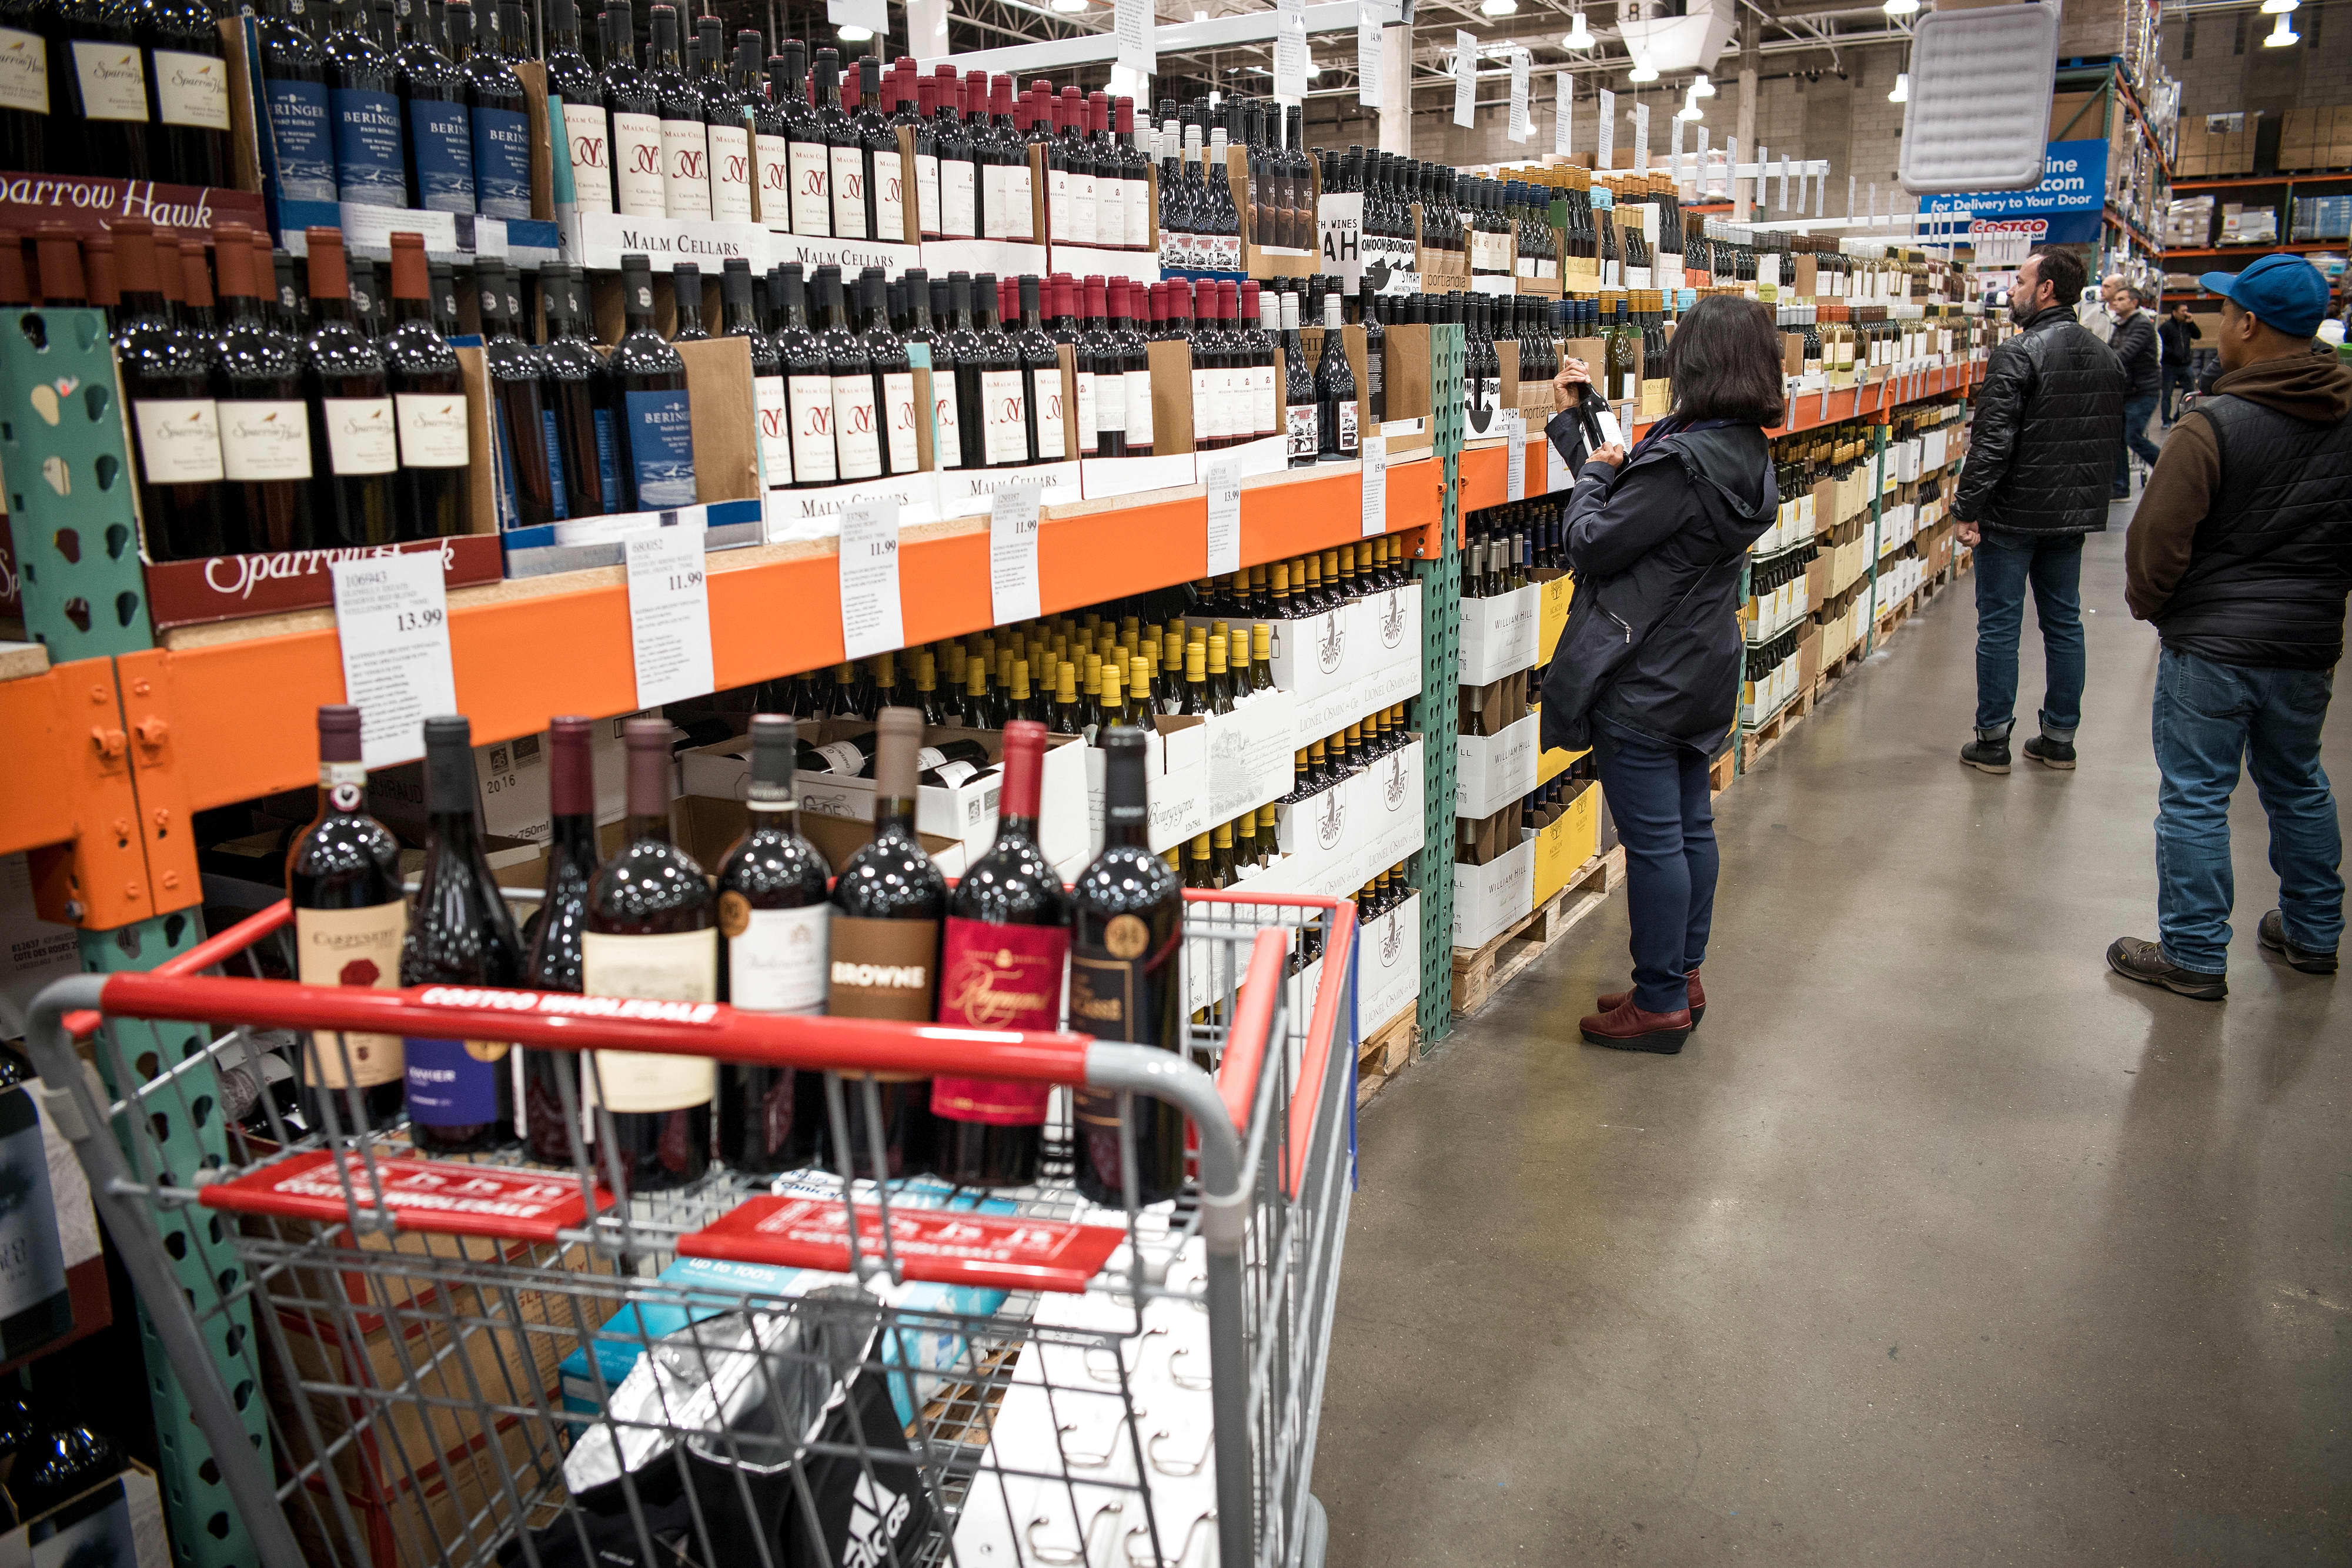 4 Ways To Shop At Costco Without A Membership And Save Money